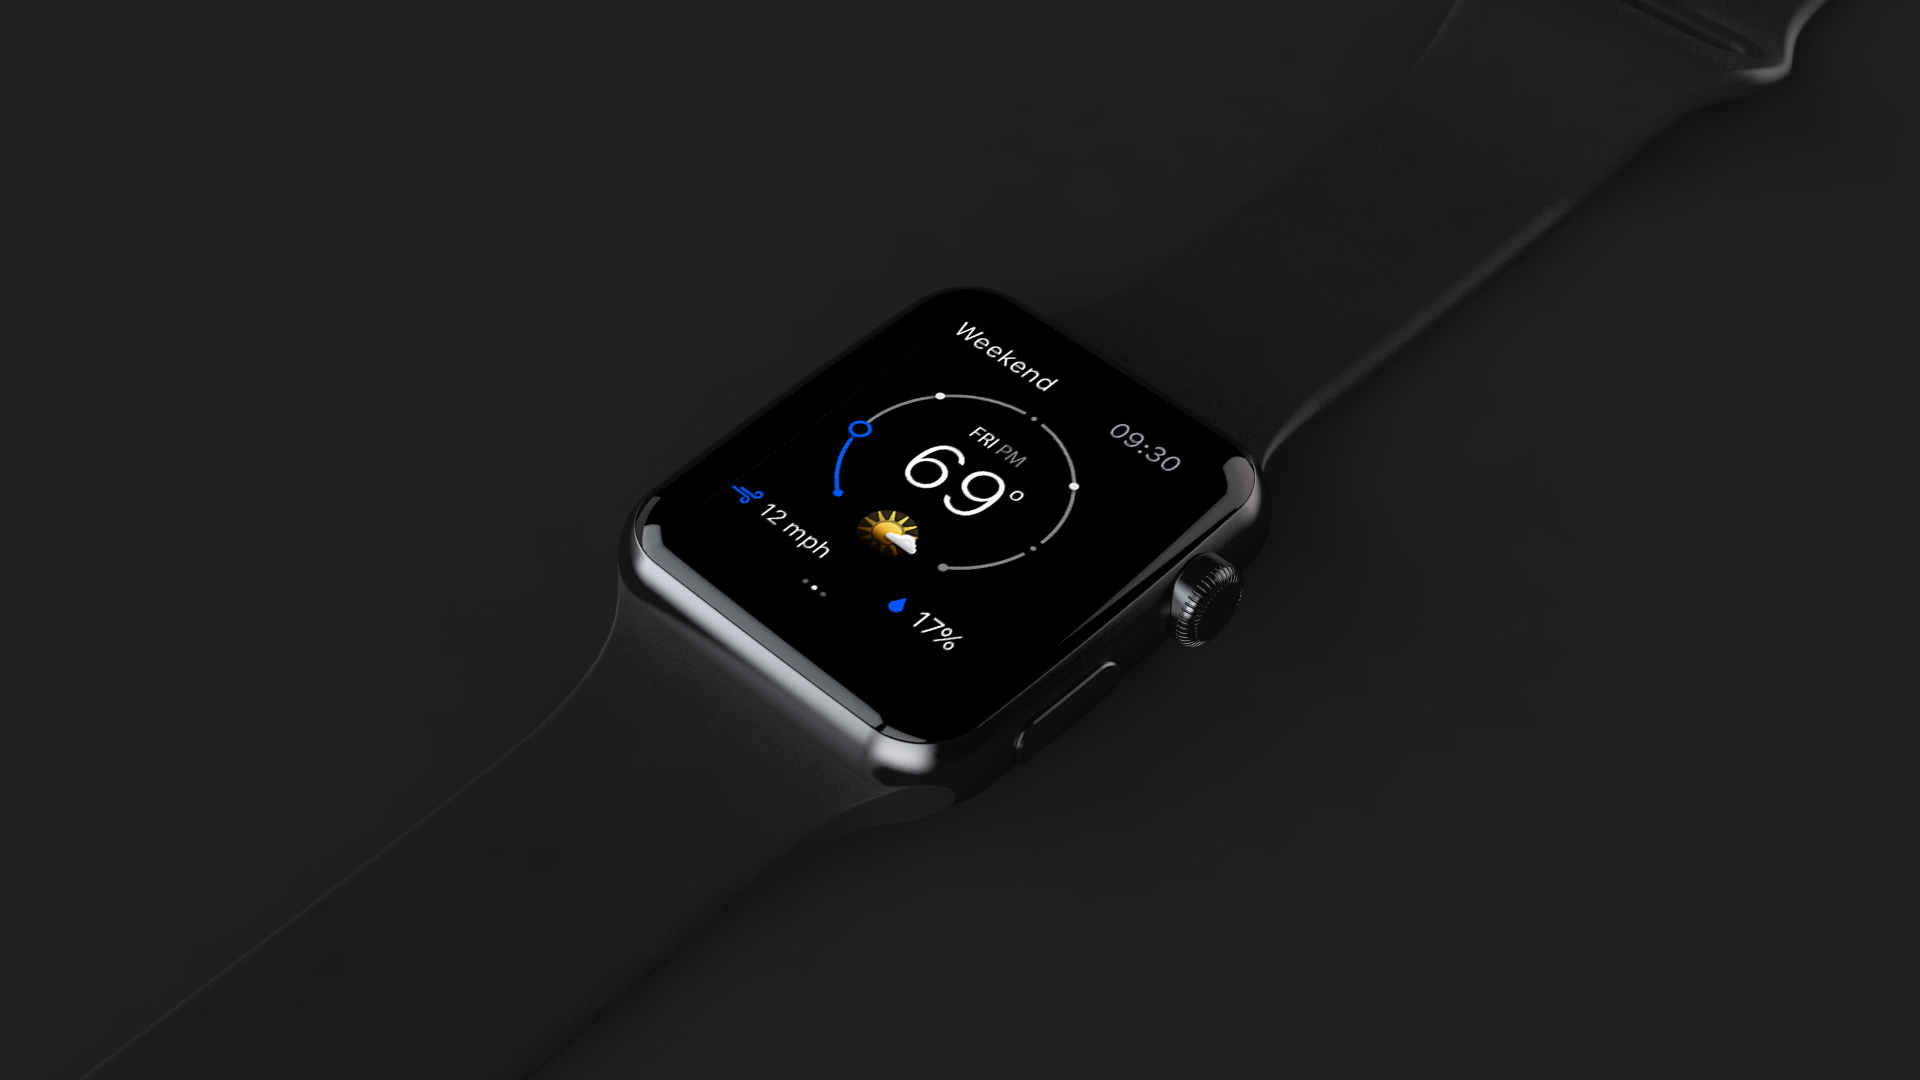 The Weather Channel brings complications to Apple Watch